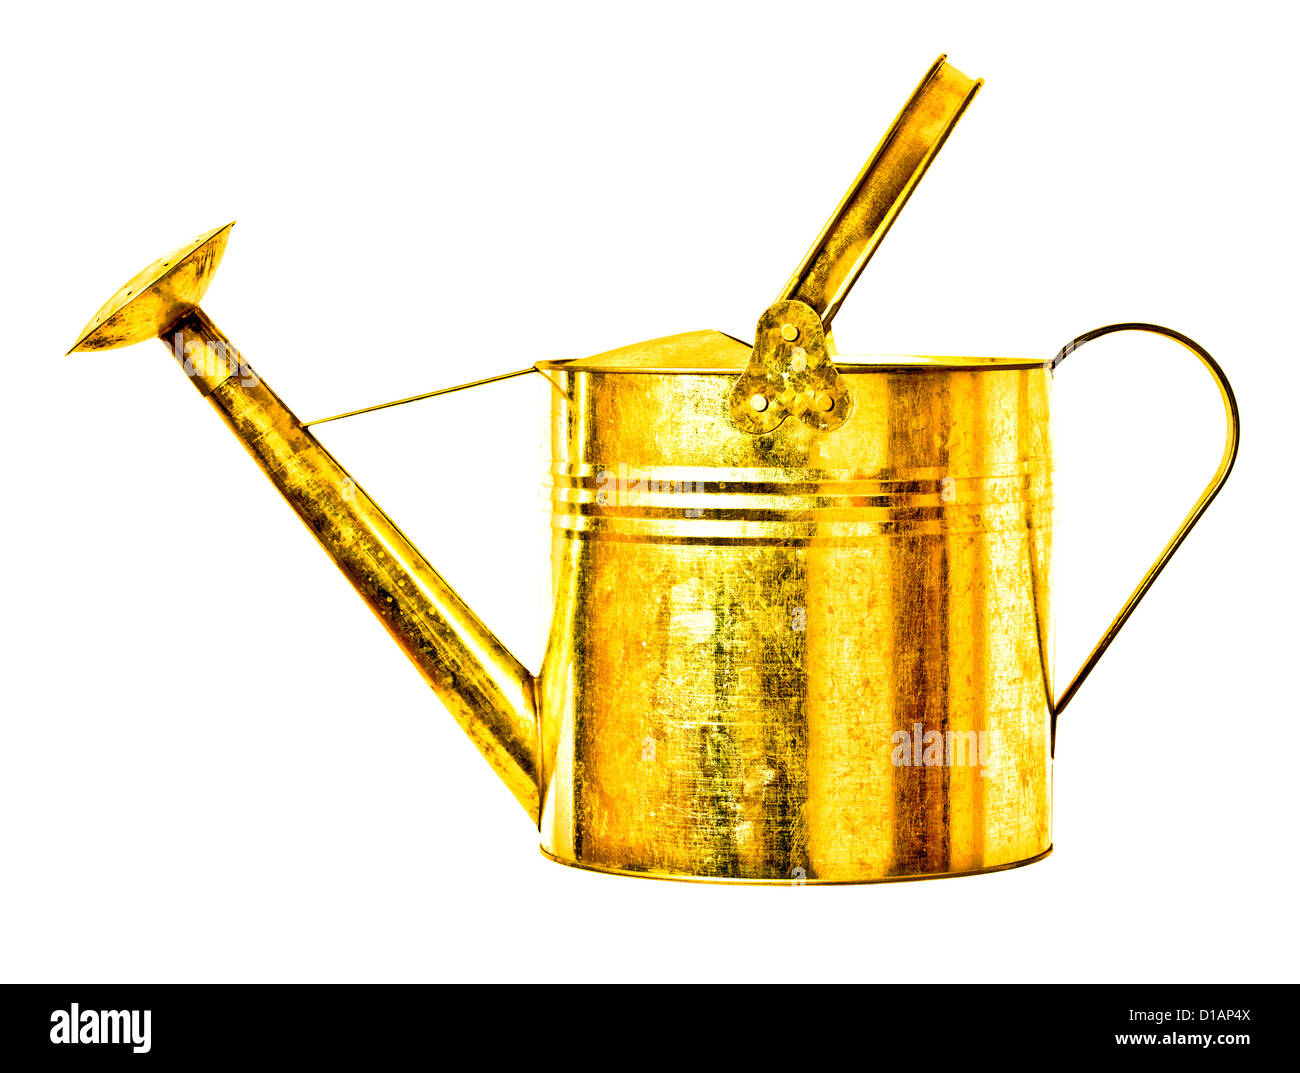 golden metal watering can isolated on white background - Stock Image